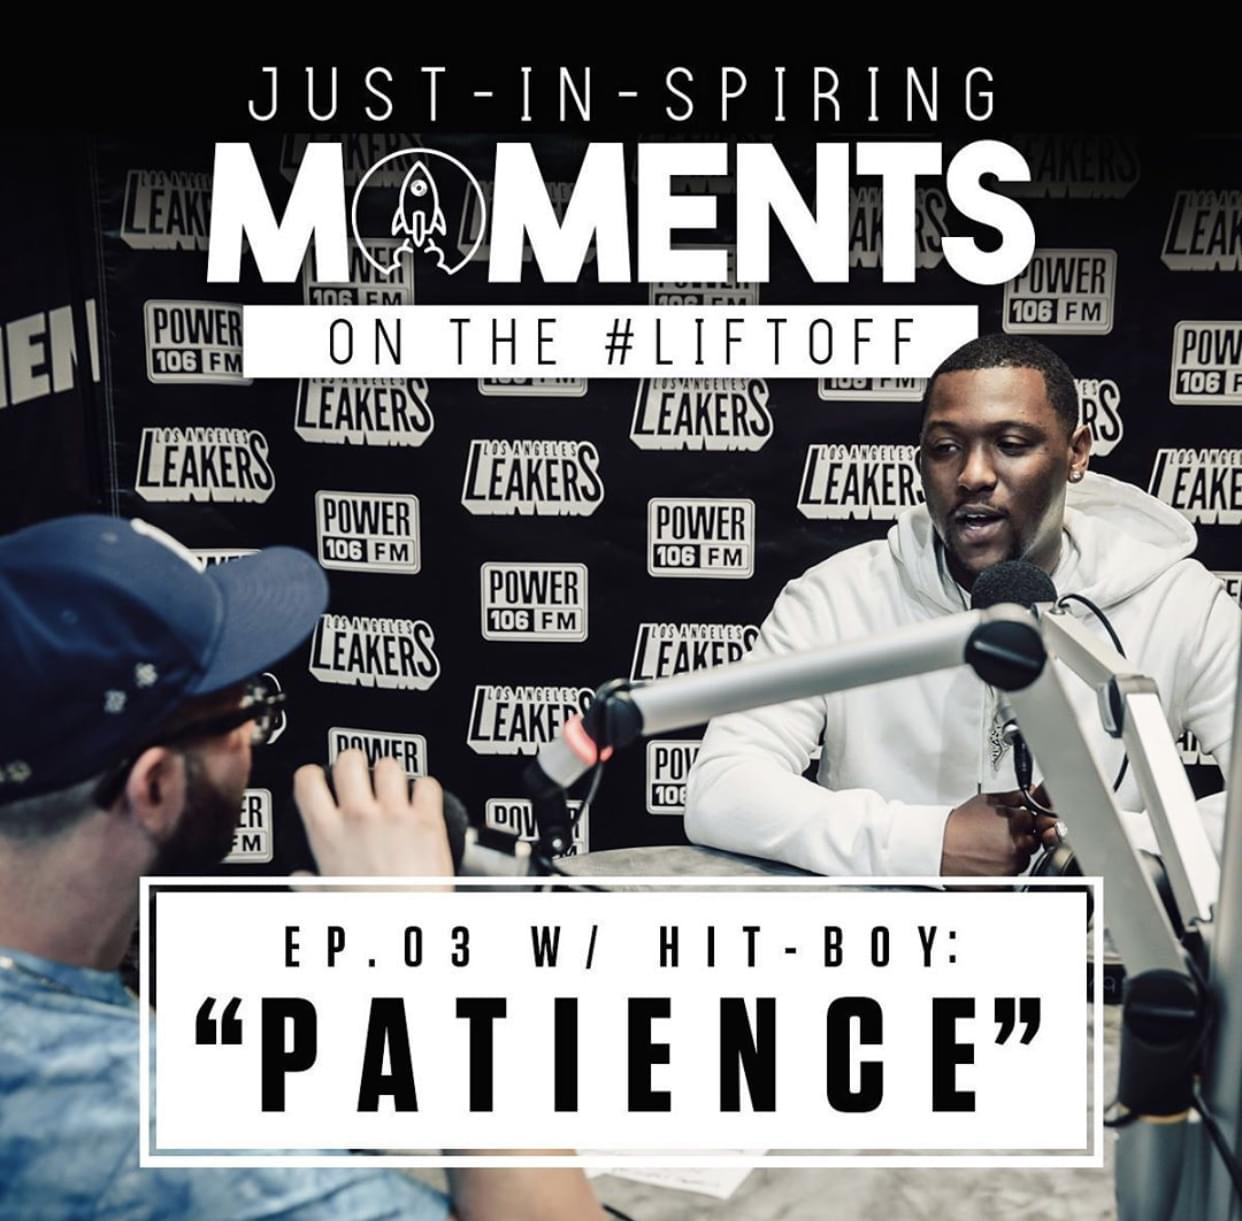 """JUST-IN-SPIRING Moments on the#LIFTOFFEp. 03 w/Hit-Boy: """"PATIENCE"""" [WATCH]"""